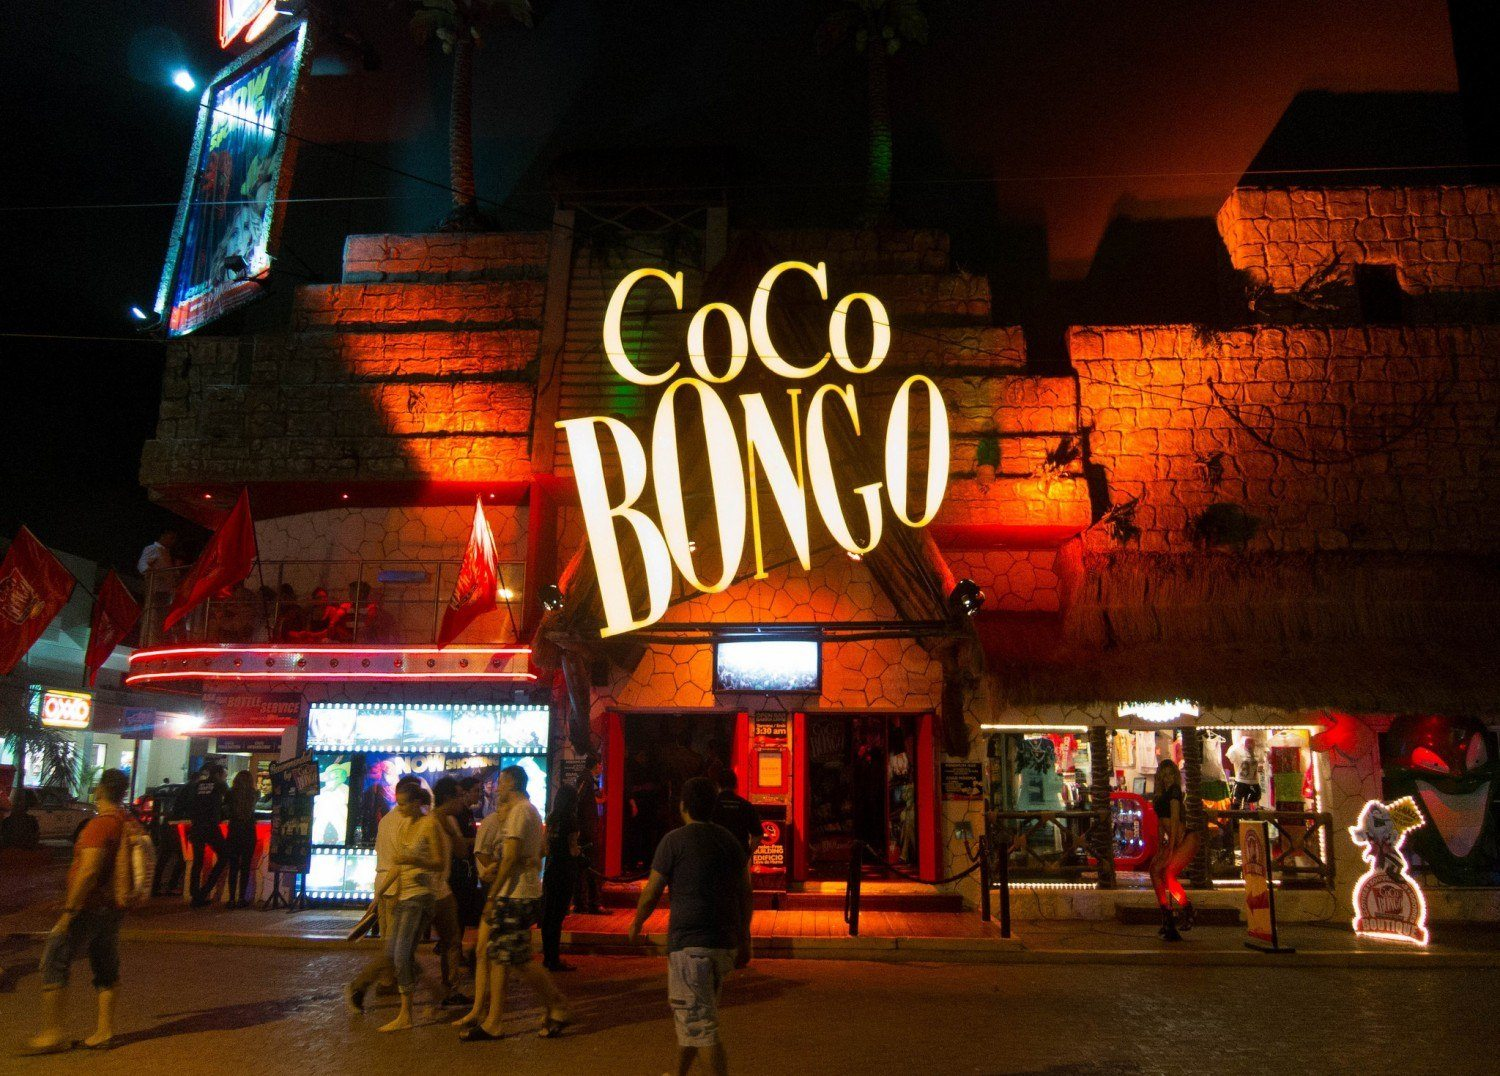 Coco Bongo is a famous nightclub found in both Playa del Carmen and Cancun (photo: Dave Lee)